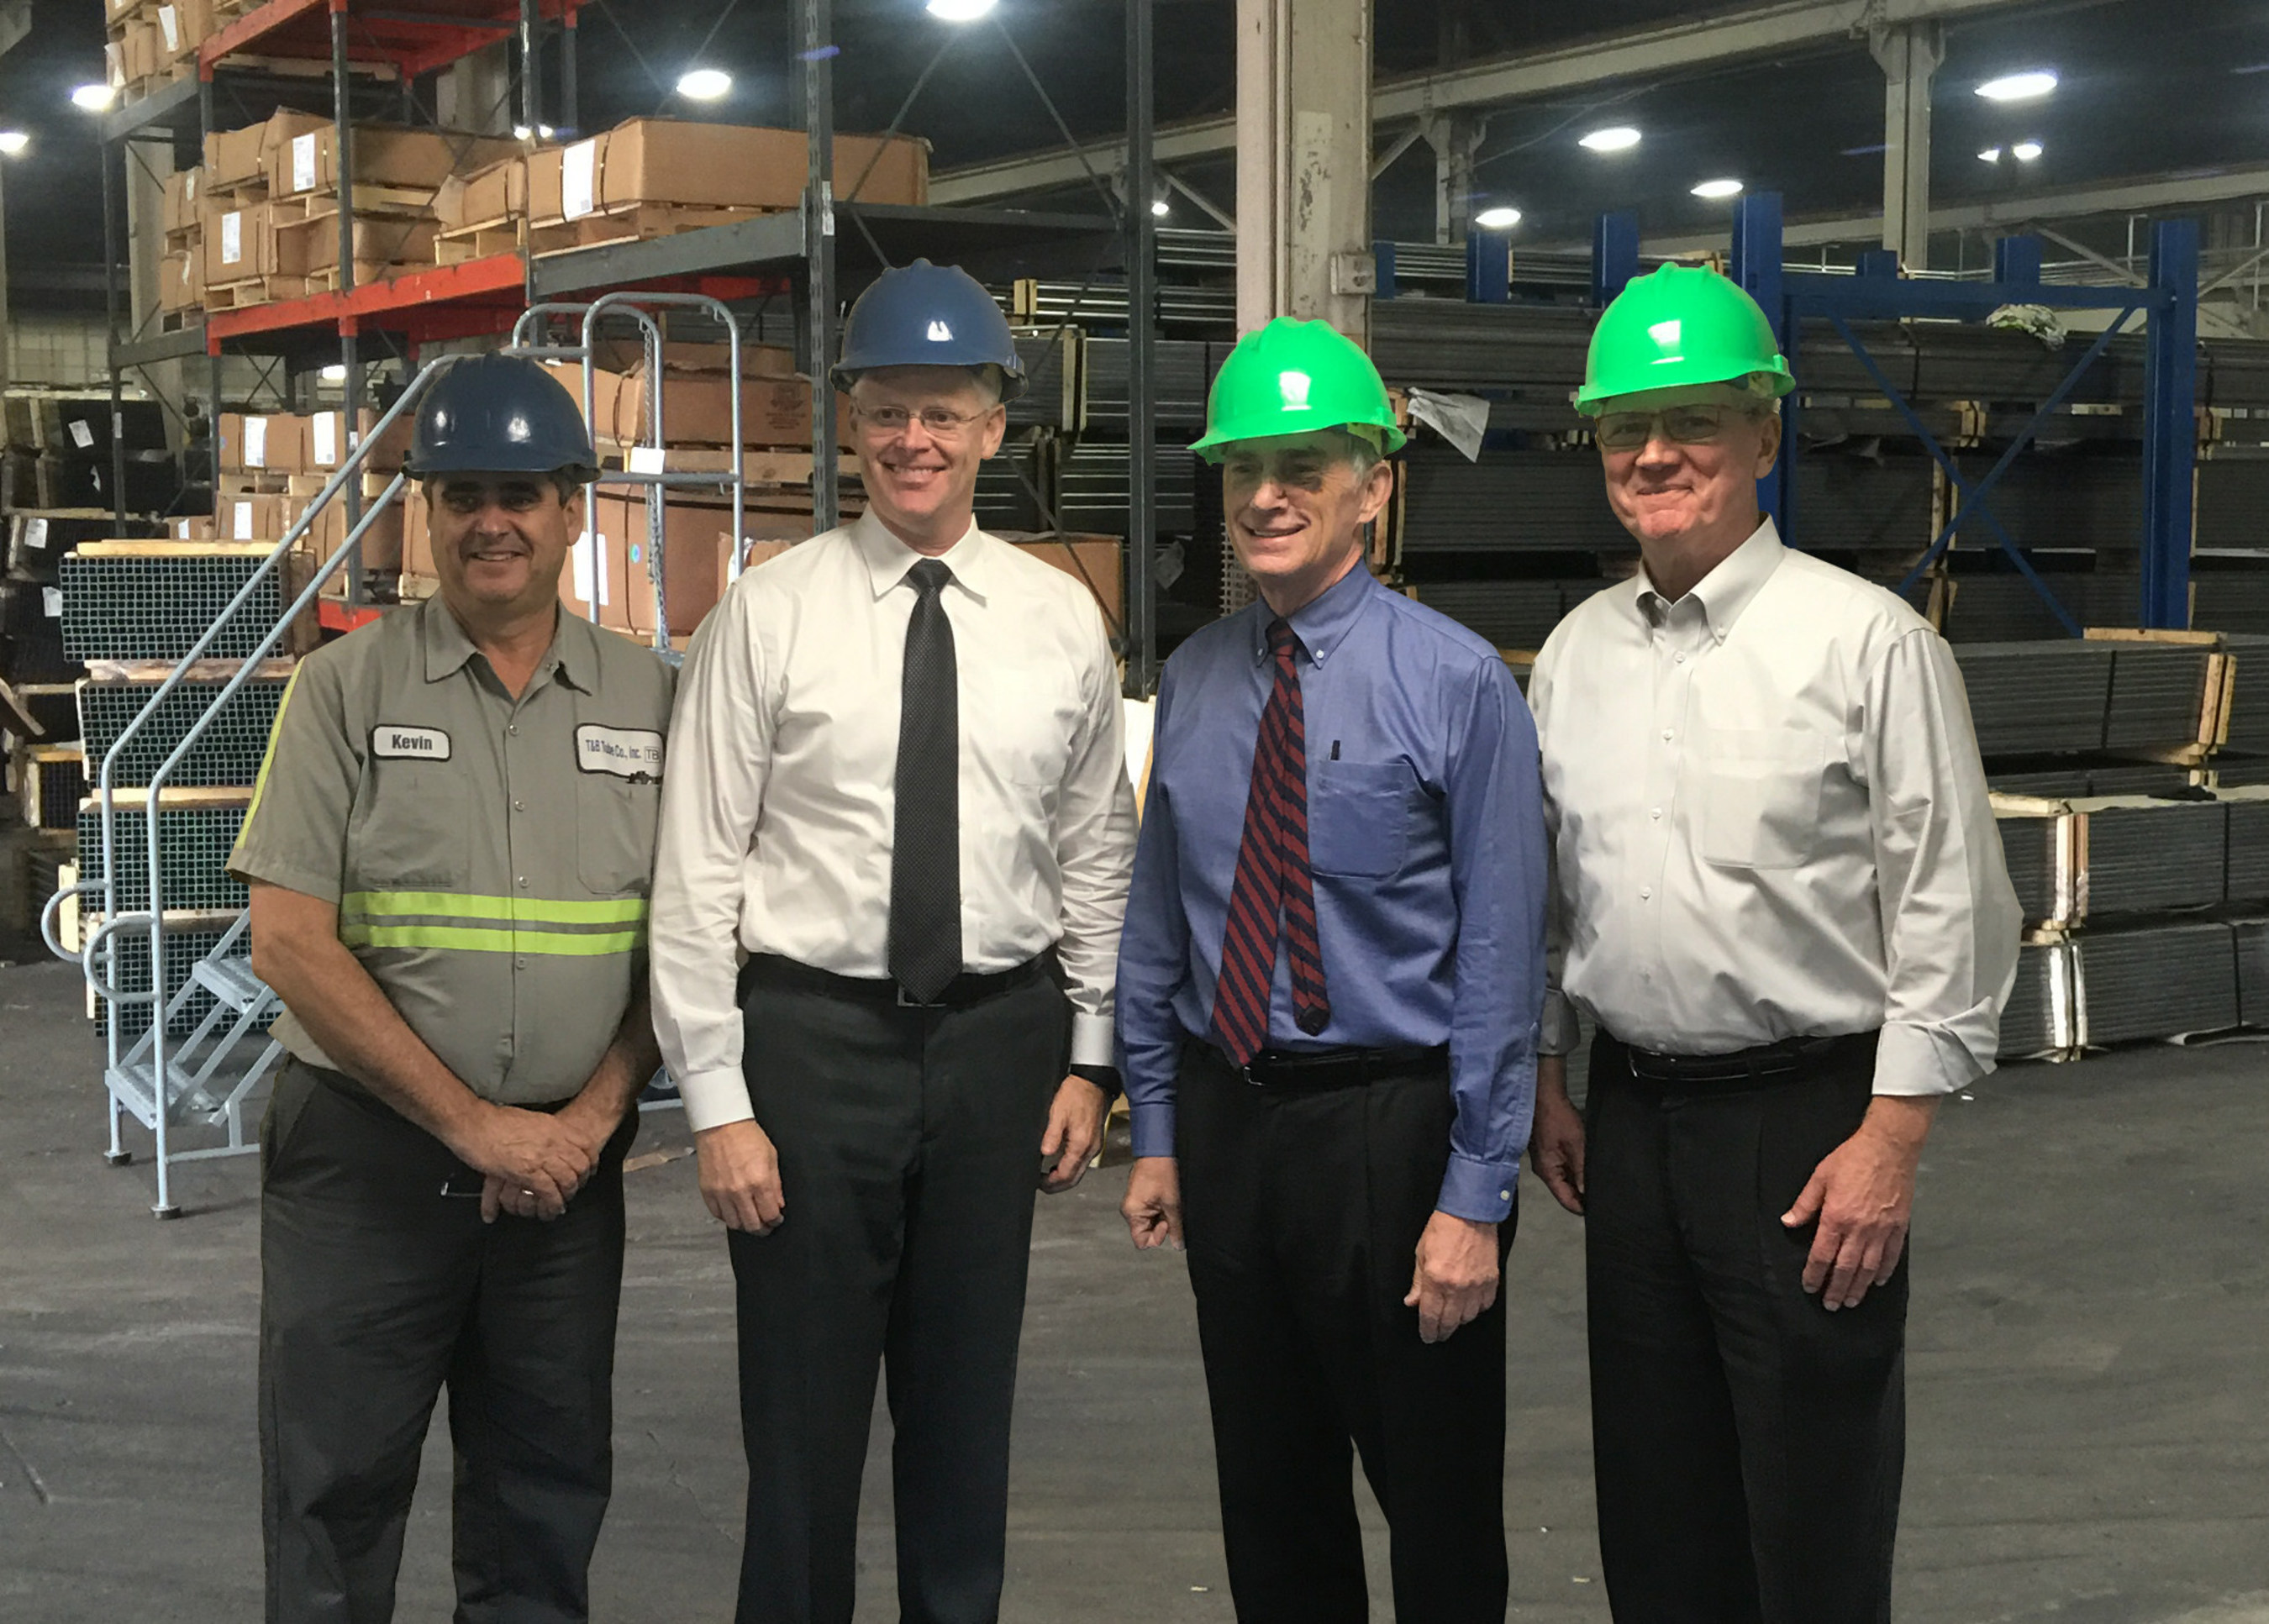 Indiana Congressman Pete Visclosky welcoming T&B Tube to Gary, Indiana - (pictured here from left to right: Kevin Barker - Operations Manager, Jack Jones - President of T&B Tube, Representative Pete Visclosky, and Patrick Lee of LEE Companies) photo credit: T&B Tube